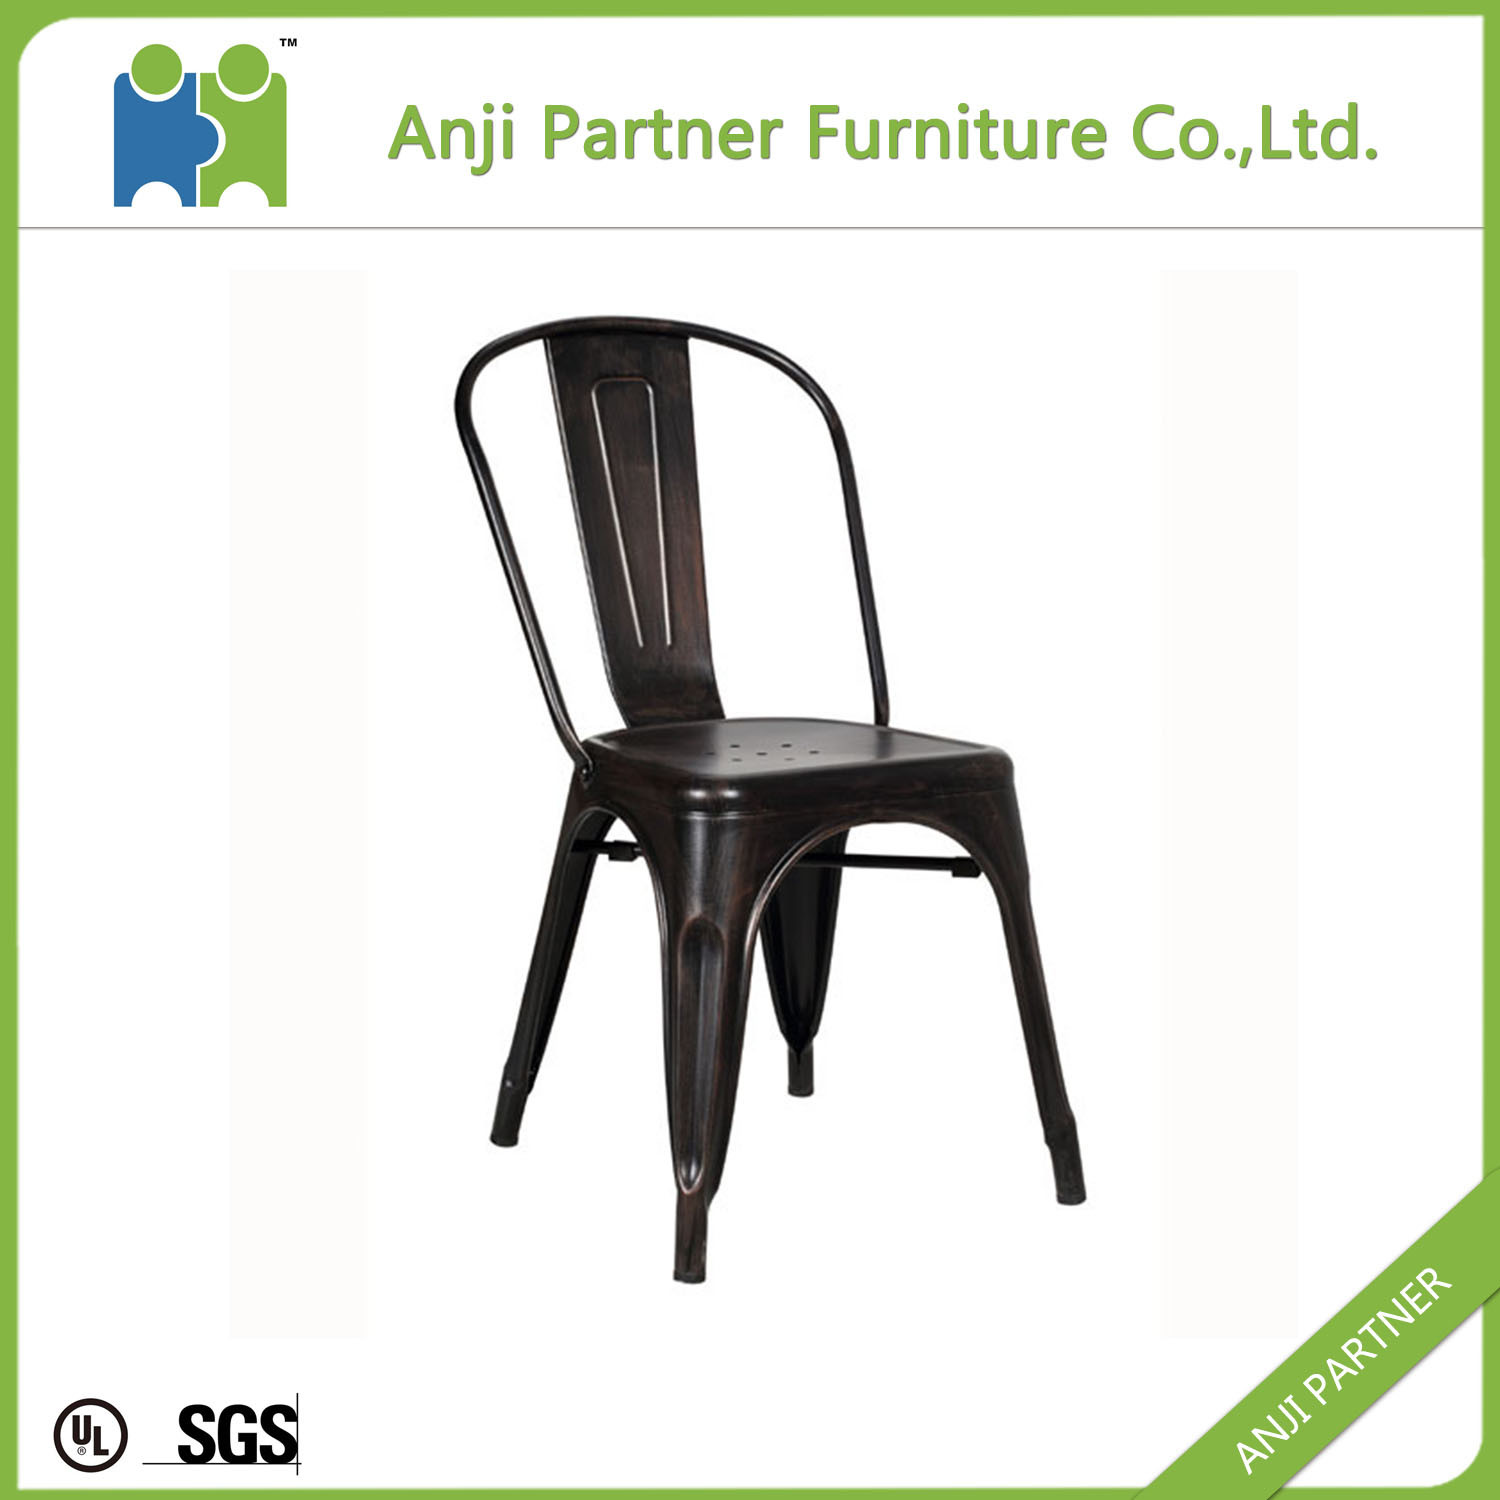 (HAGUPI) China Wholesale Modern Furniture Vintage Industrial Metal Chair